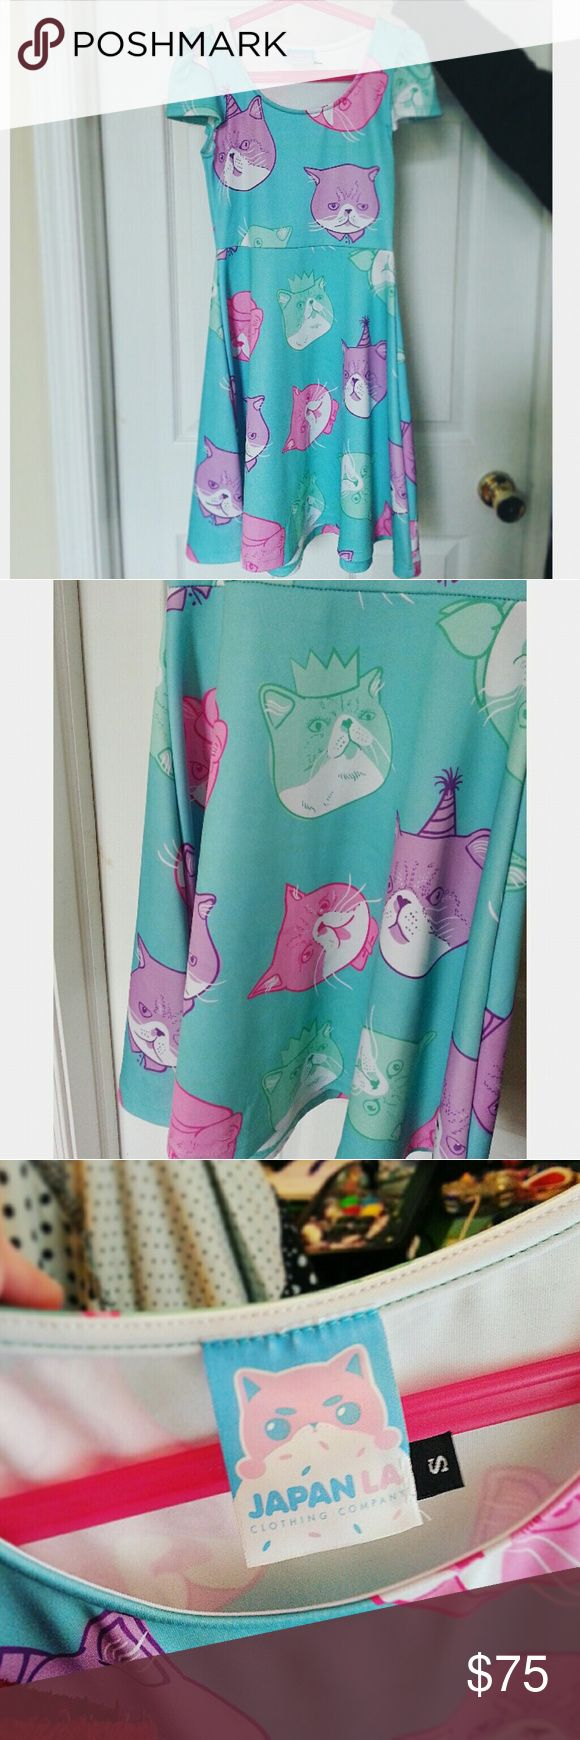 Japan LA Dapper Cat Dress Dolls Kill Kawaii XS S Super cute Japan LA dress that I bought about 4 years ago  In great condition as I only wore it a few times  5th pic shows these lines that were on it when I first bought it, how noticeable they are in the pic is how noticeable they are in real life which is not noticeable really!  Let me know if you have any questions!   Definitely fits a size smaller than marked which is why I listed it as an XS Dolls Kill Dresses Mini